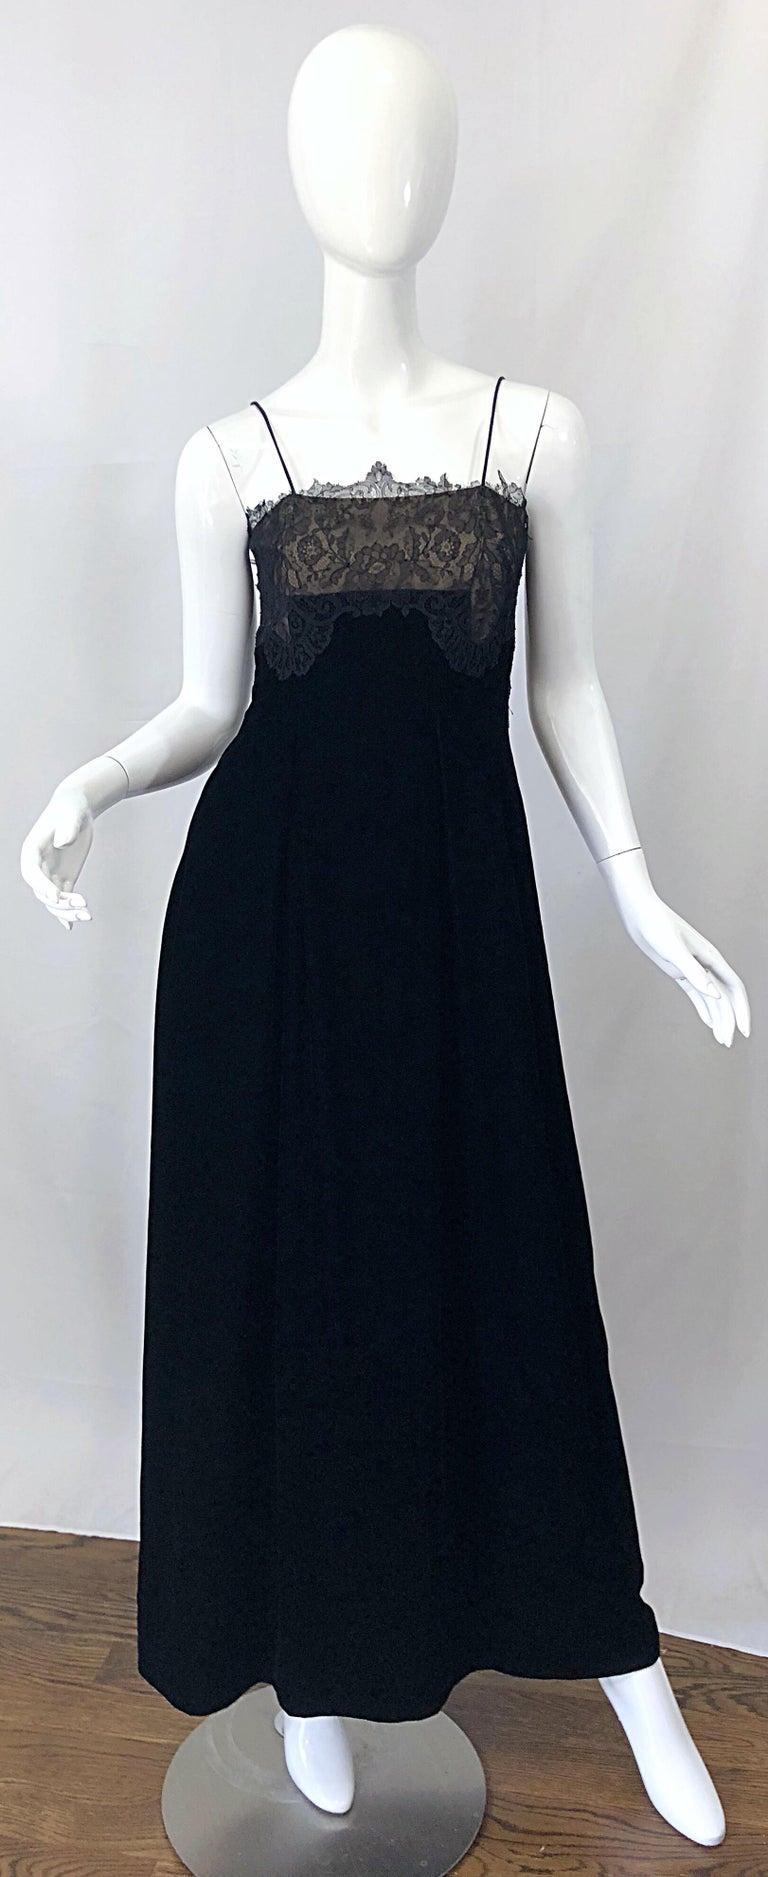 Beautiful late 70s RICHILENE for NEIMAN MARCUS black silk velvet and nude lace chiffon full length evening dress! Couture quality was my first impression upon inspecting this beauty. Inner boned bodice keeps everything in place. Luxurious black silk